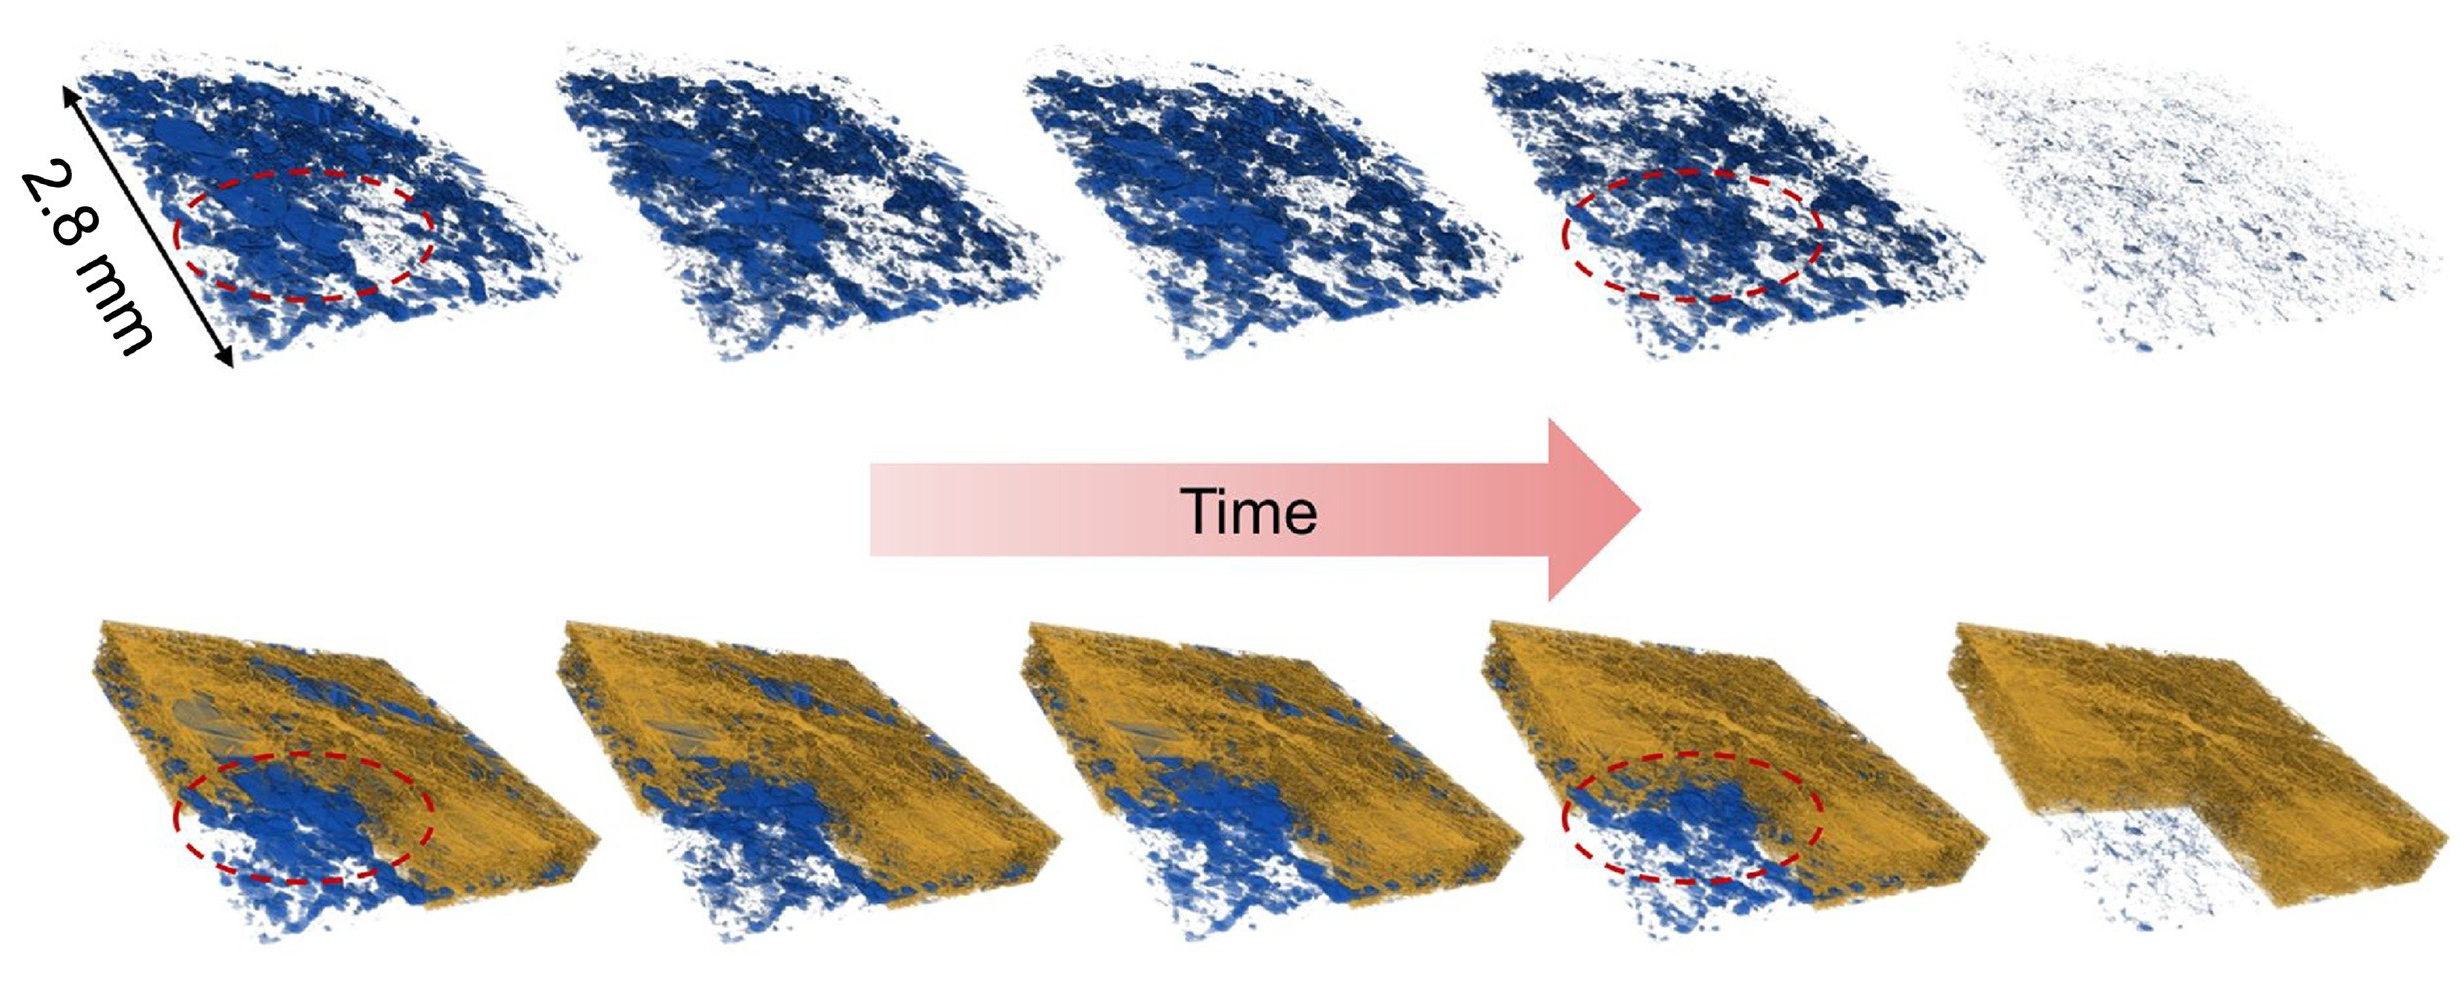 Image - Water clusters in sample fuel-cell components shrink over time in this sequence of images, produced by a 3-D imaging technique known as micro X-ray computed tomography. The water clusters were contained in a fibrous membrane that was exposed to different temperatures. The mean temperature began at about 104 degrees Fahrenheit and was gradually increased to about 131 degrees Fahrenheit. The top side of the images was the hotter side of the sample, and the bottom of the images was the colder side. (Credit: Berkeley Lab)